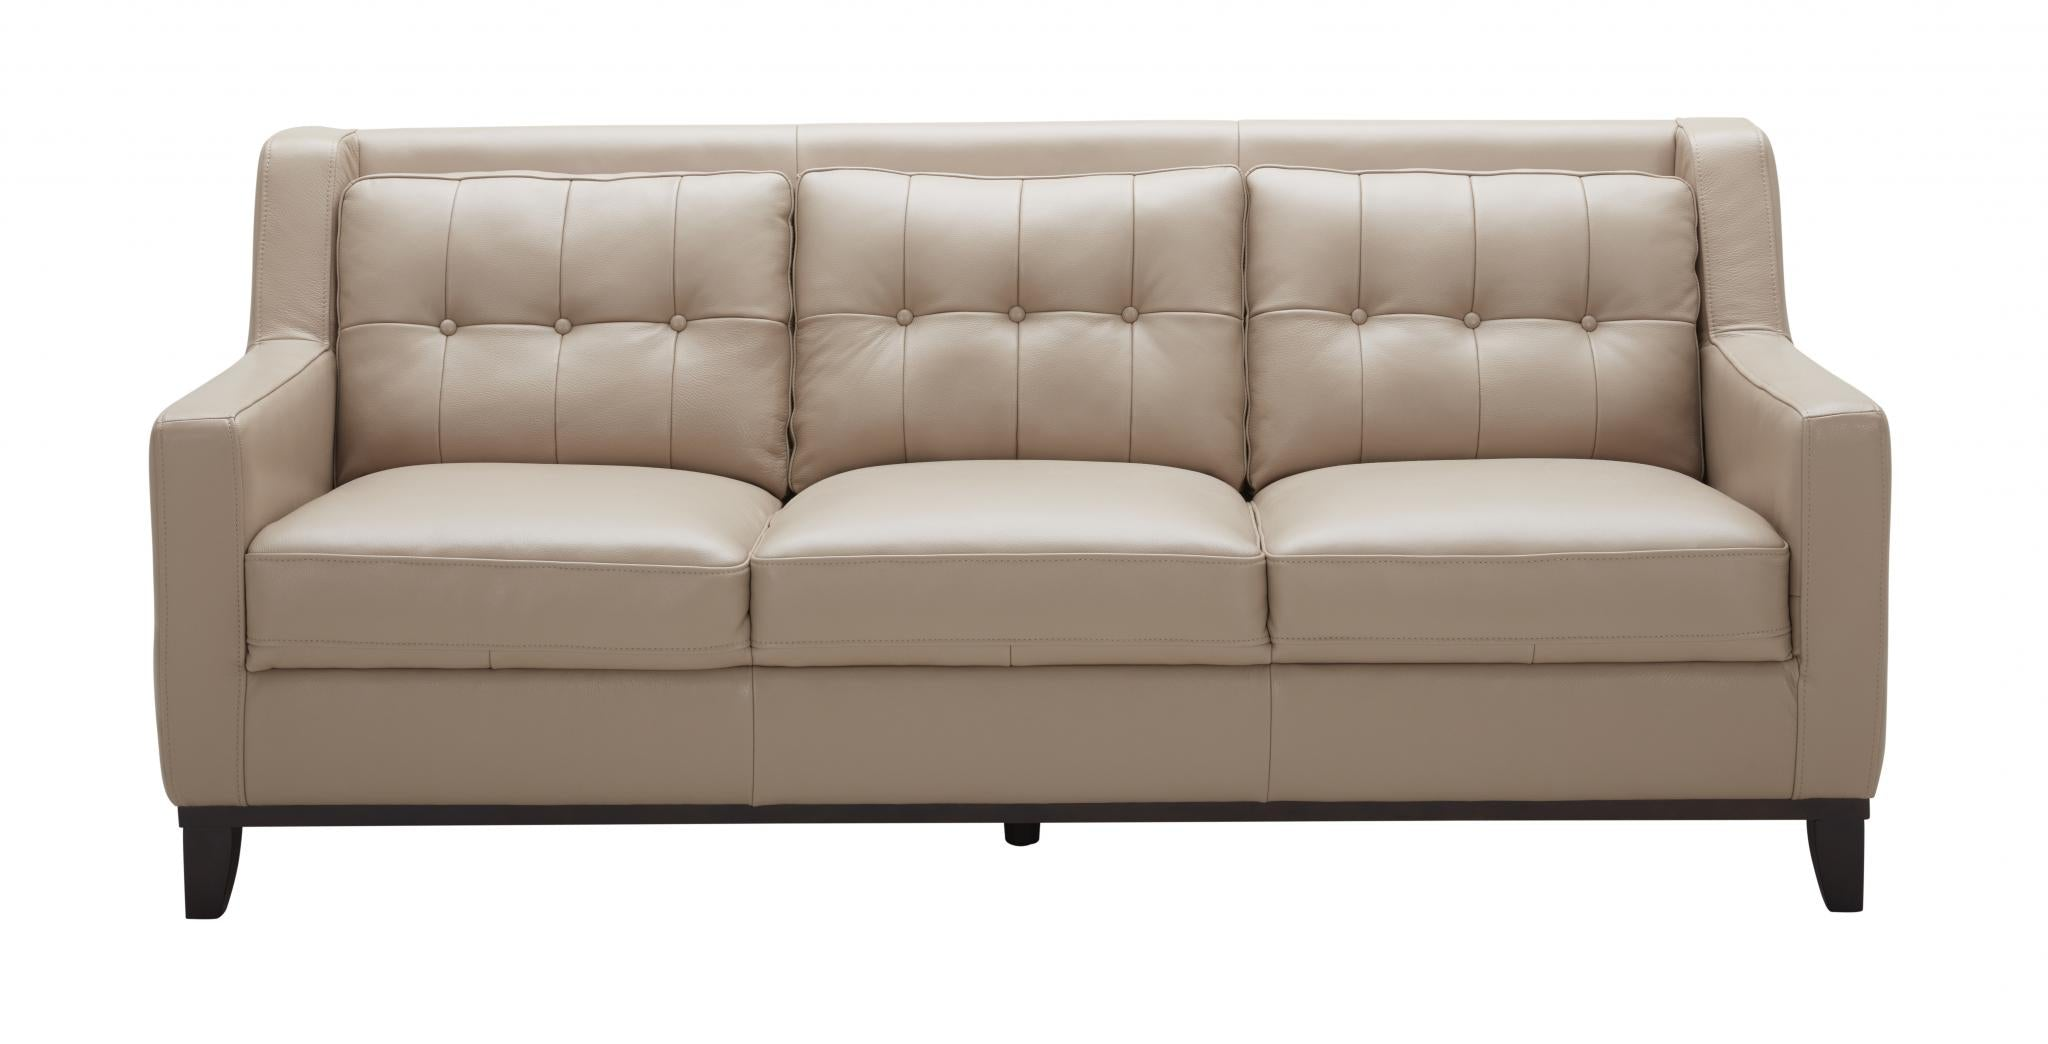 Sofas andy sofa huffman koos furniture